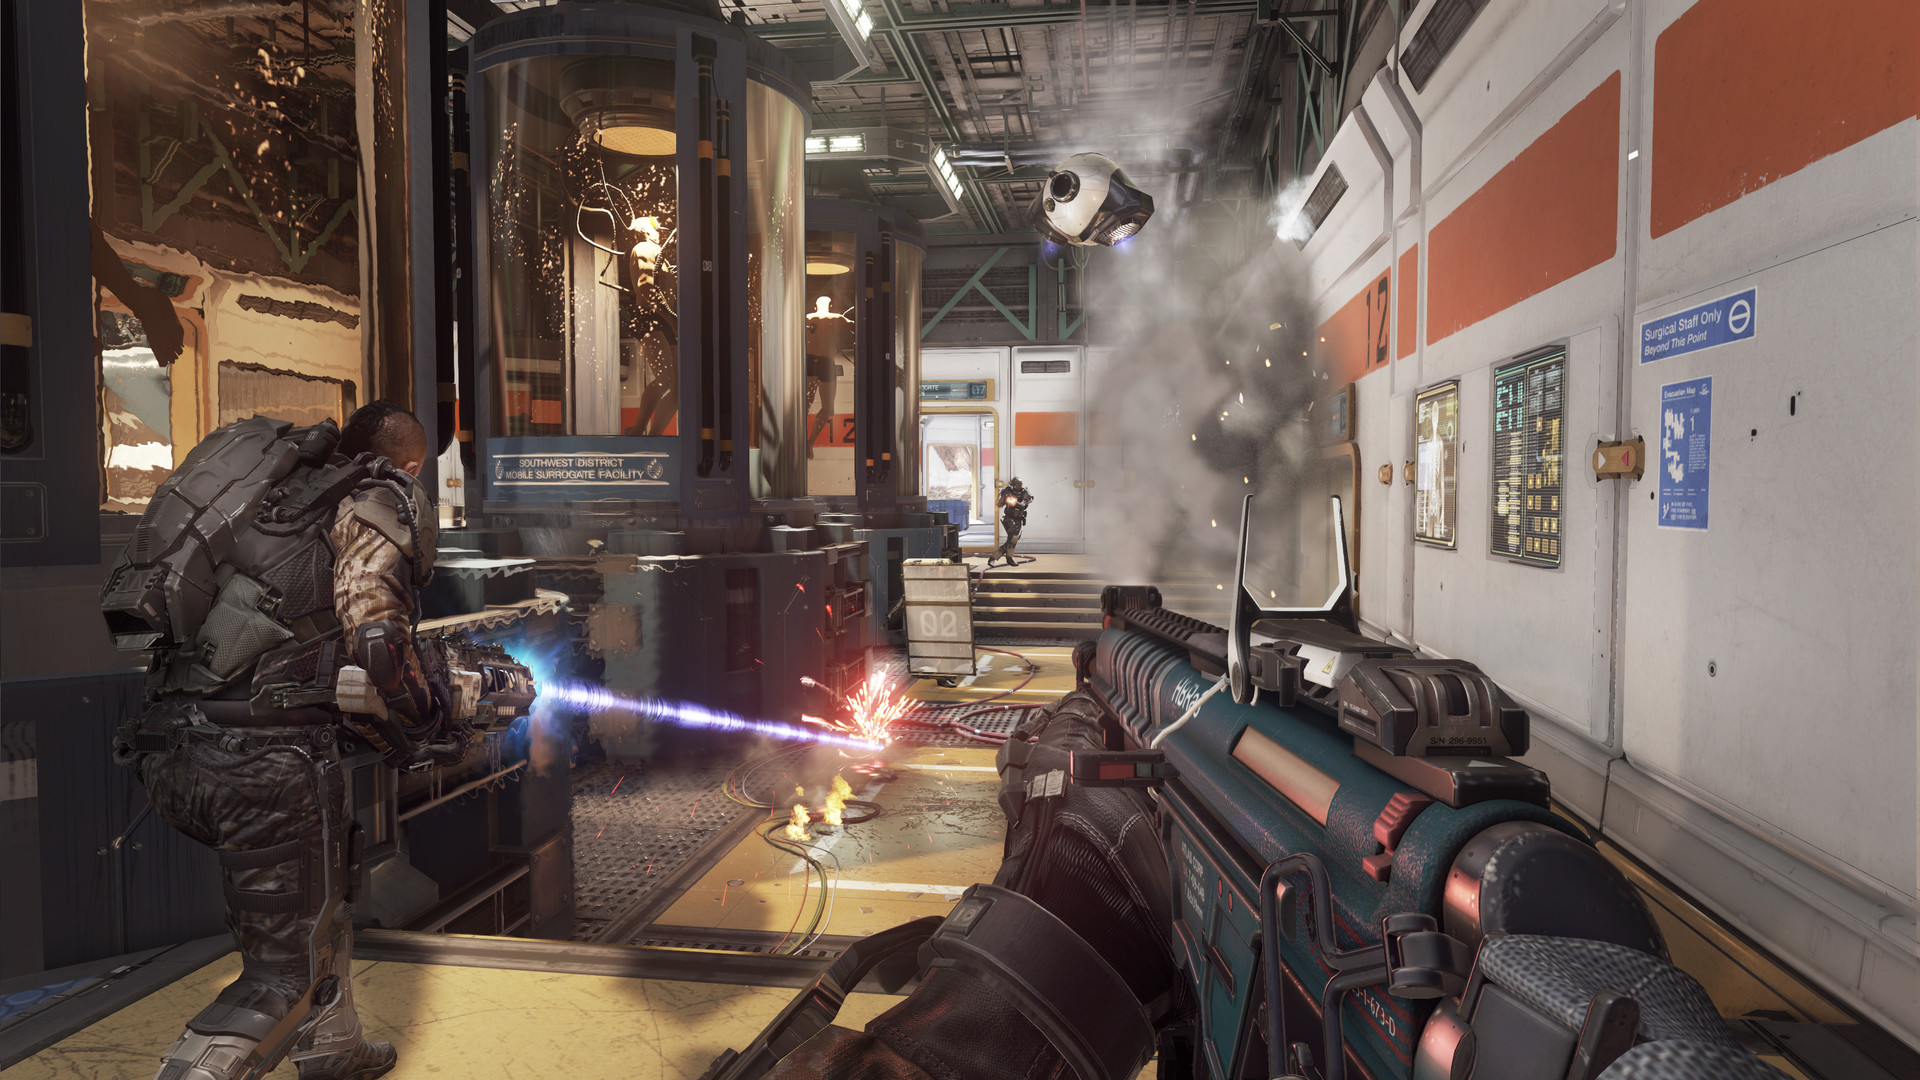 download call of duty advanced warfare repack - corepack singlelink iso rar part google drive direct link uptobox ftp link magnet torrent thepiratebay kickass alternative